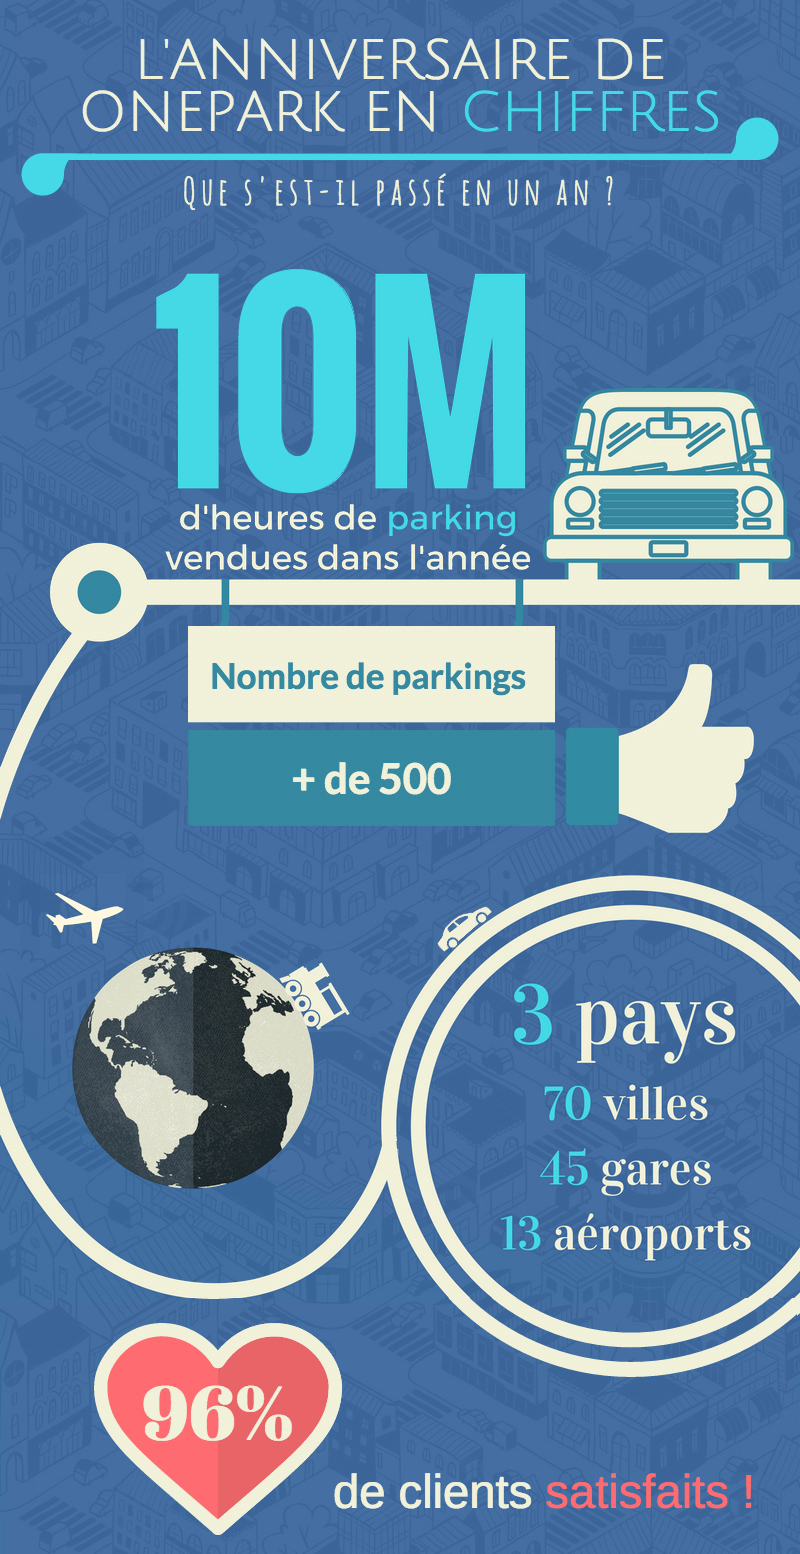 infographie chiffres onepark